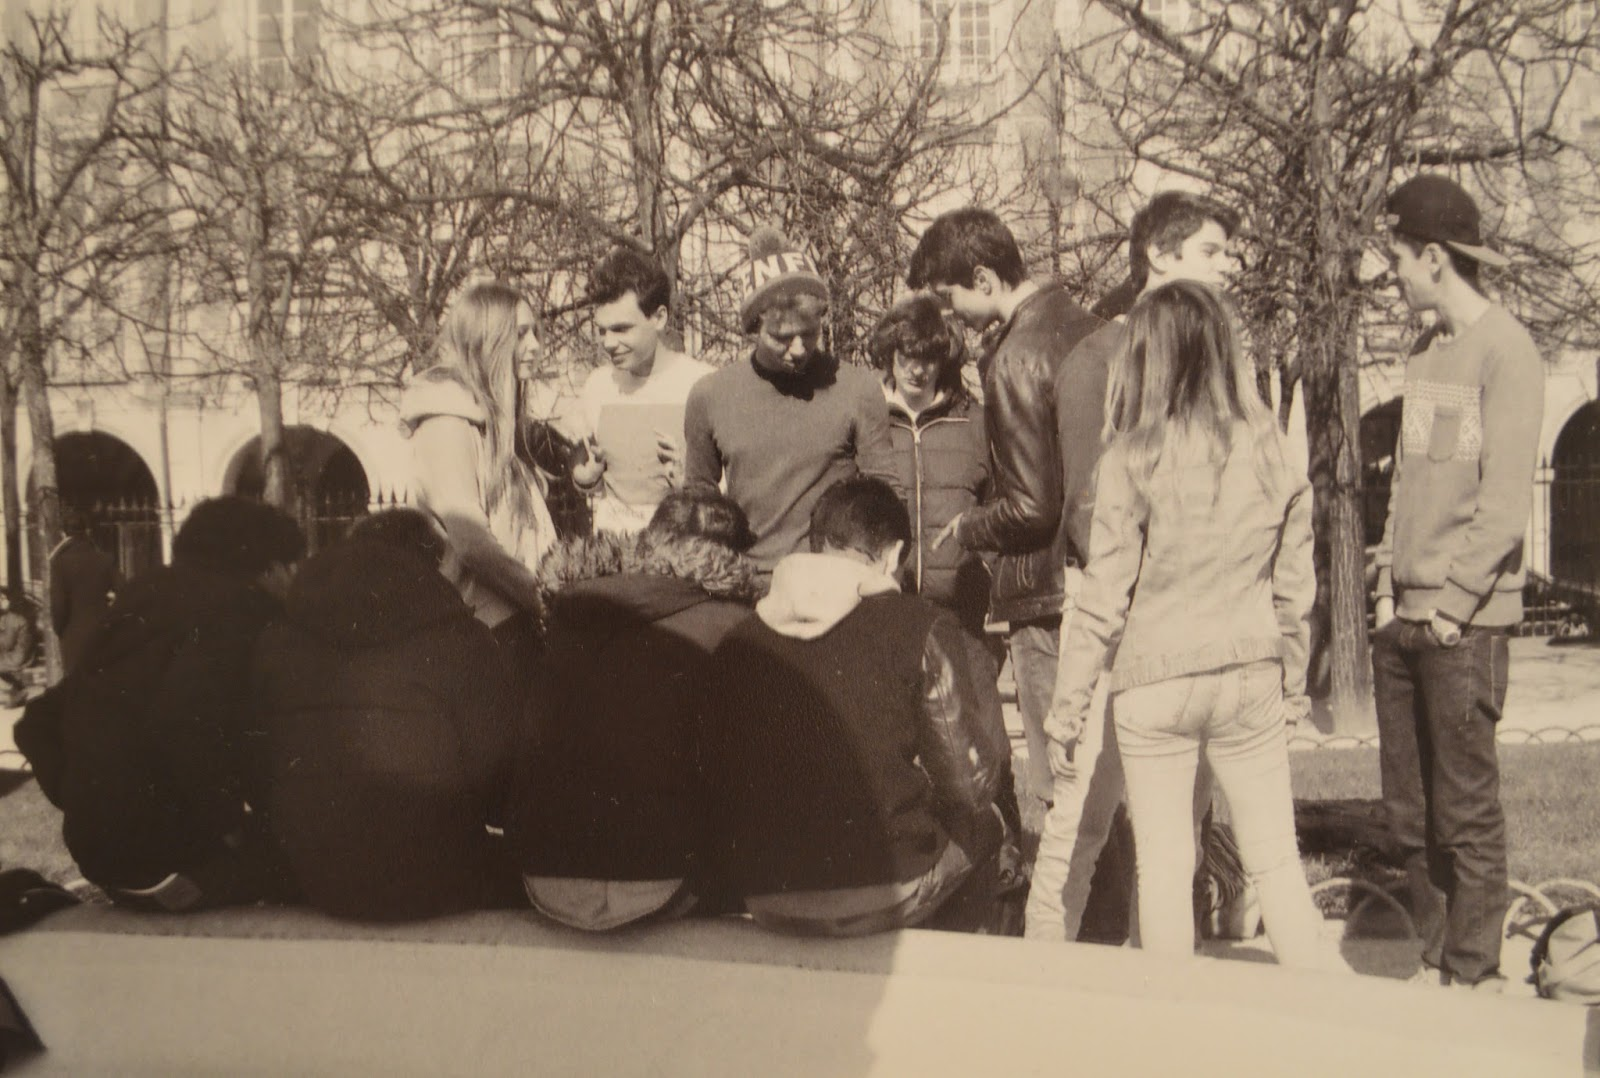 Photography: Teenagers in Place des Vosges, Paris